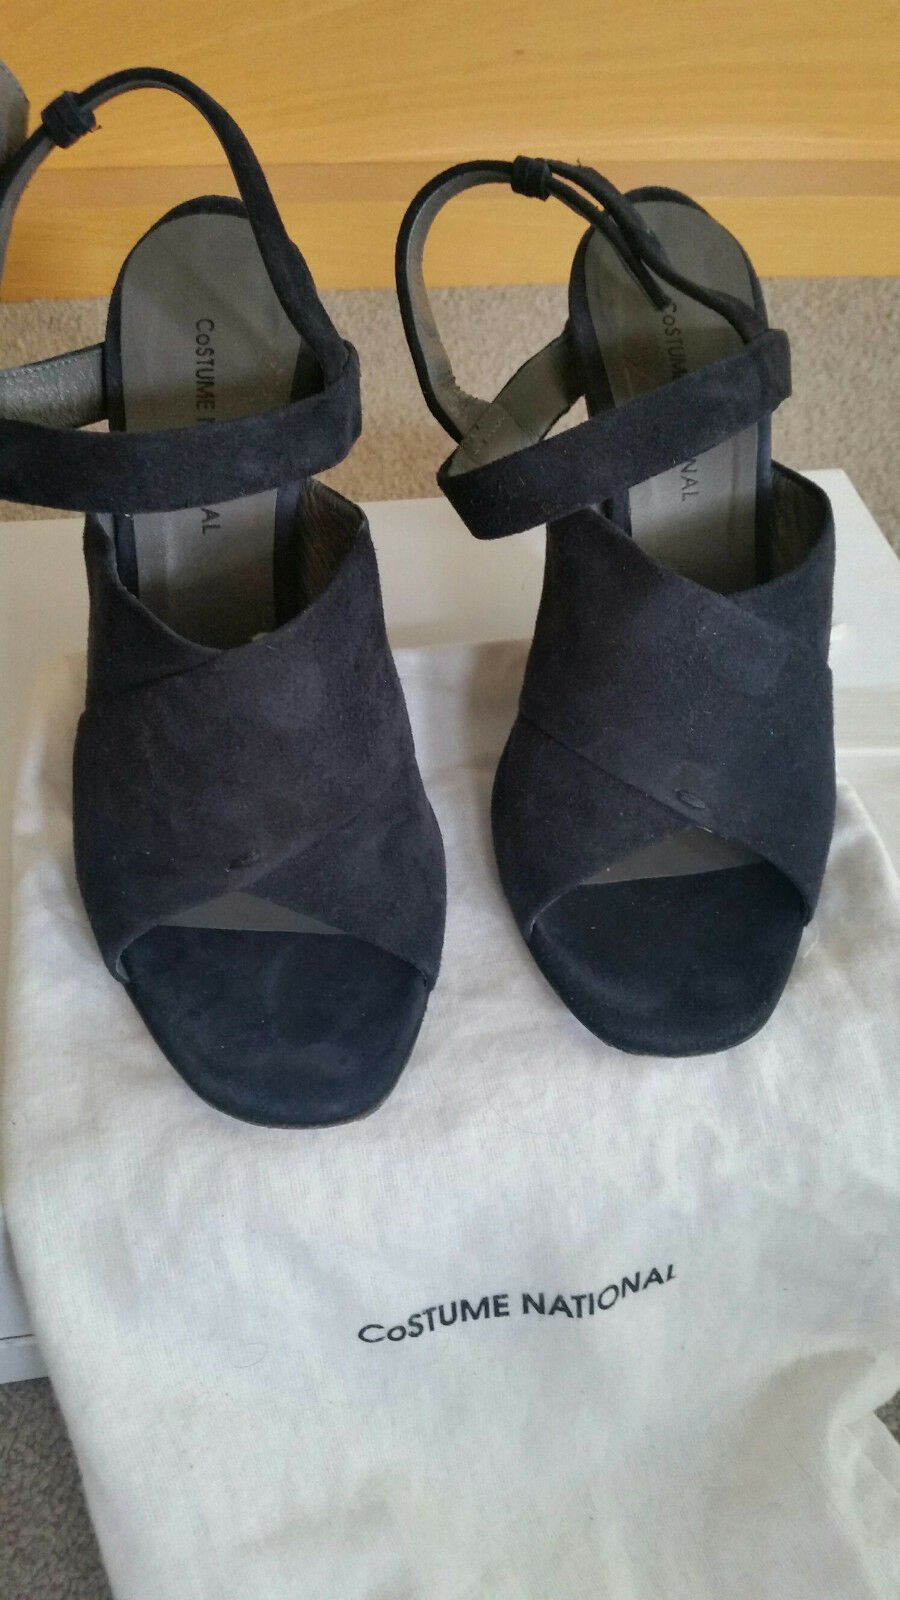 Costume National Sandals with Heel Navy Suede Size EU36.5